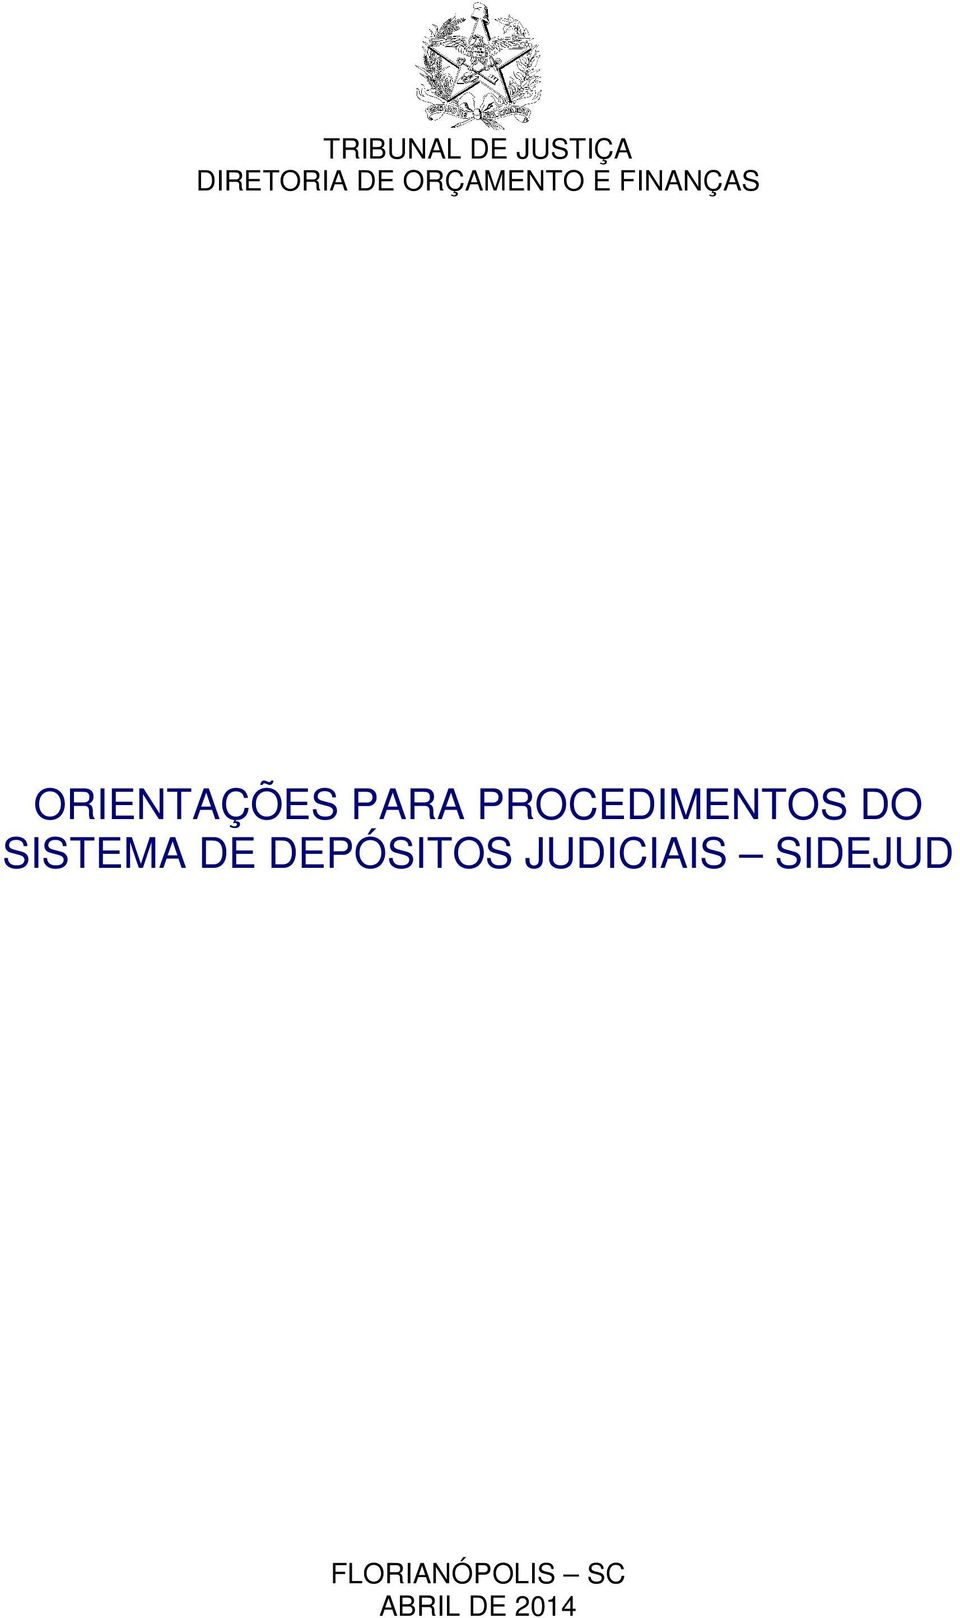 PROCEDIMENTOS DO SISTEMA DE DEPÓSITOS